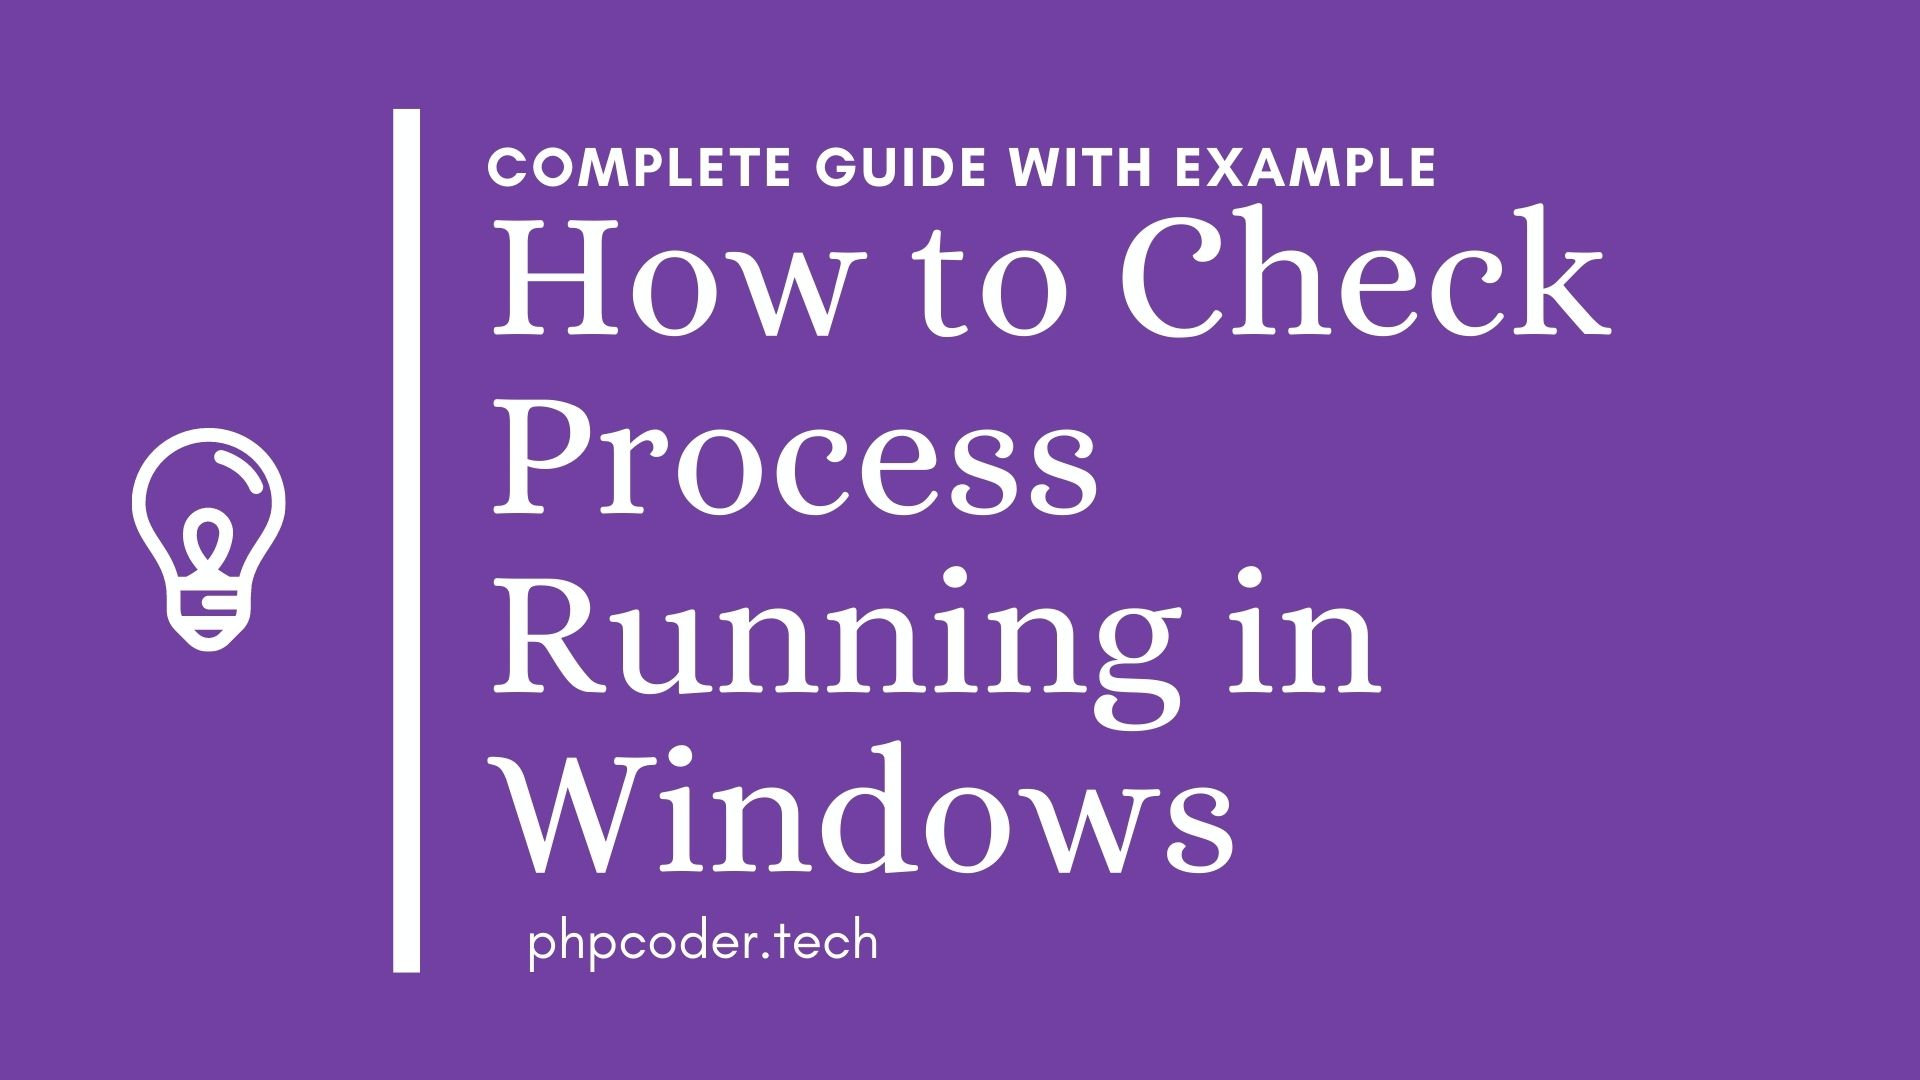 How to Check Process Running in Windows - PHPCODER.TECH